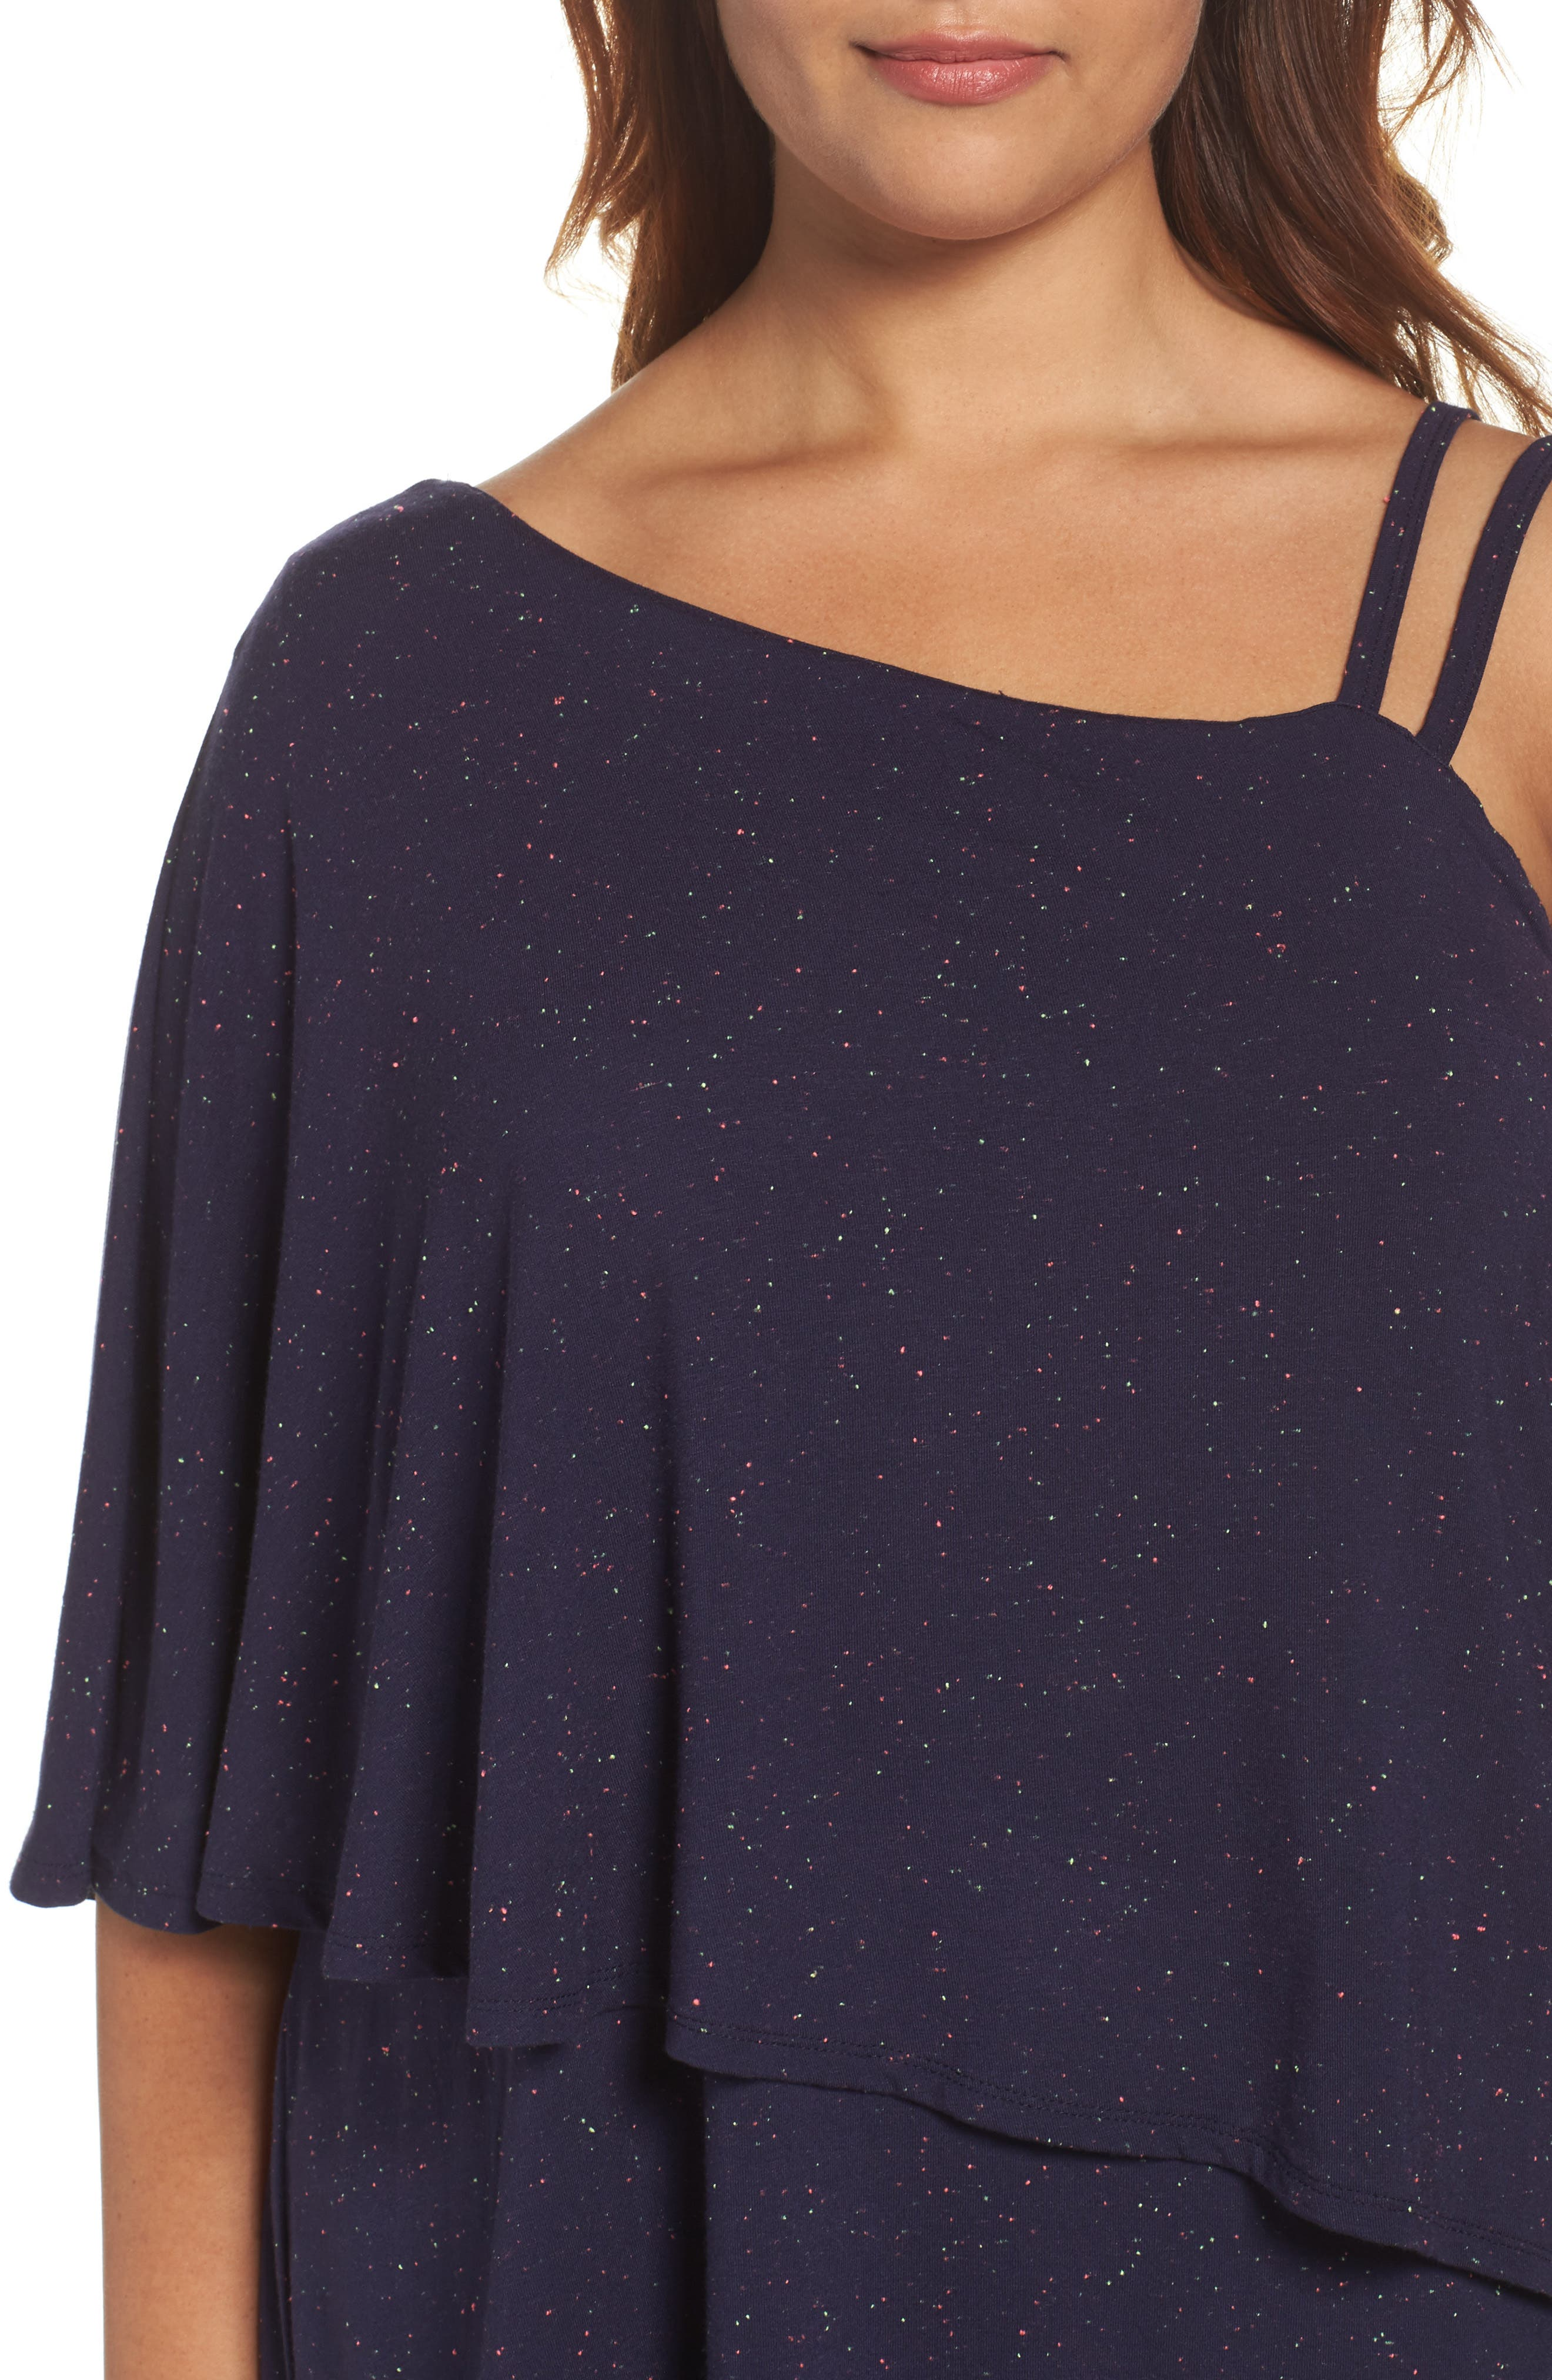 Alternate Image 4  - Wit & Wisdom One-Shoulder Ruffle Asymmetrical Top (Plus Size) (Nordstrom Exclusive)